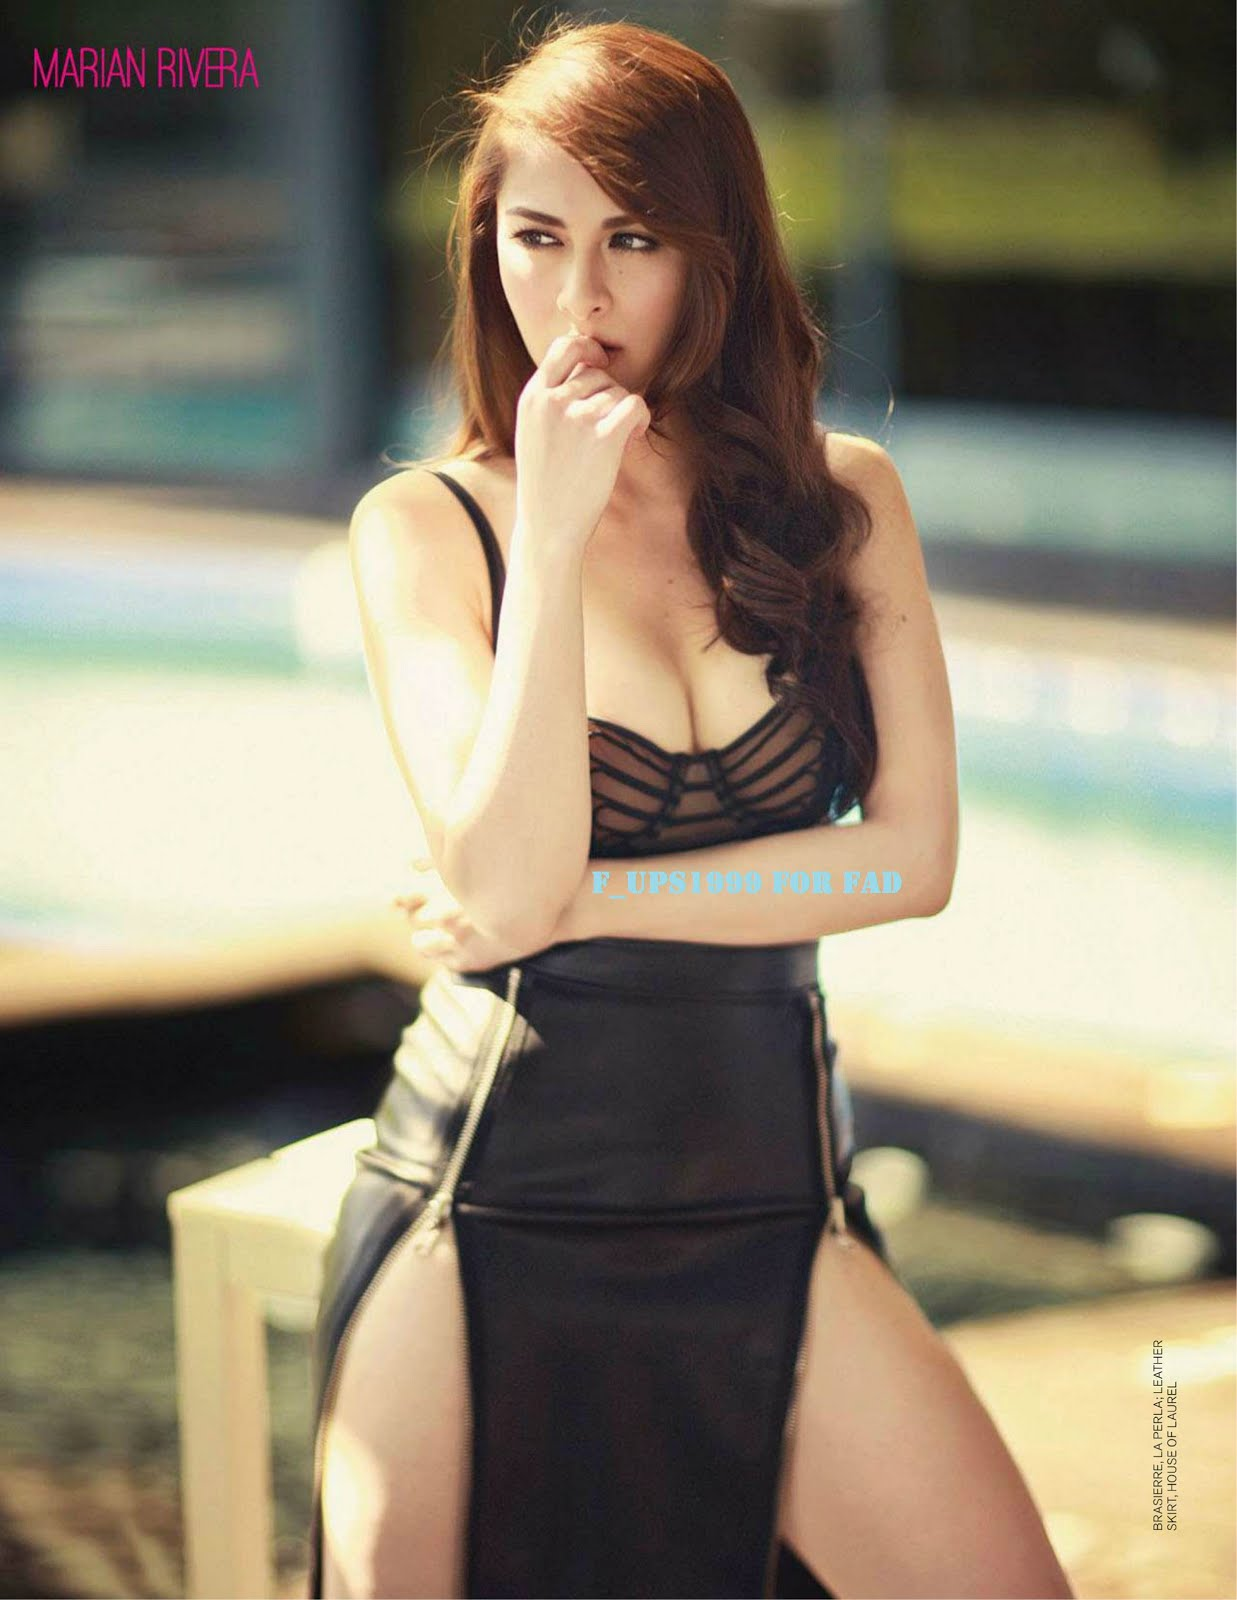 pictures naked Marian rivera